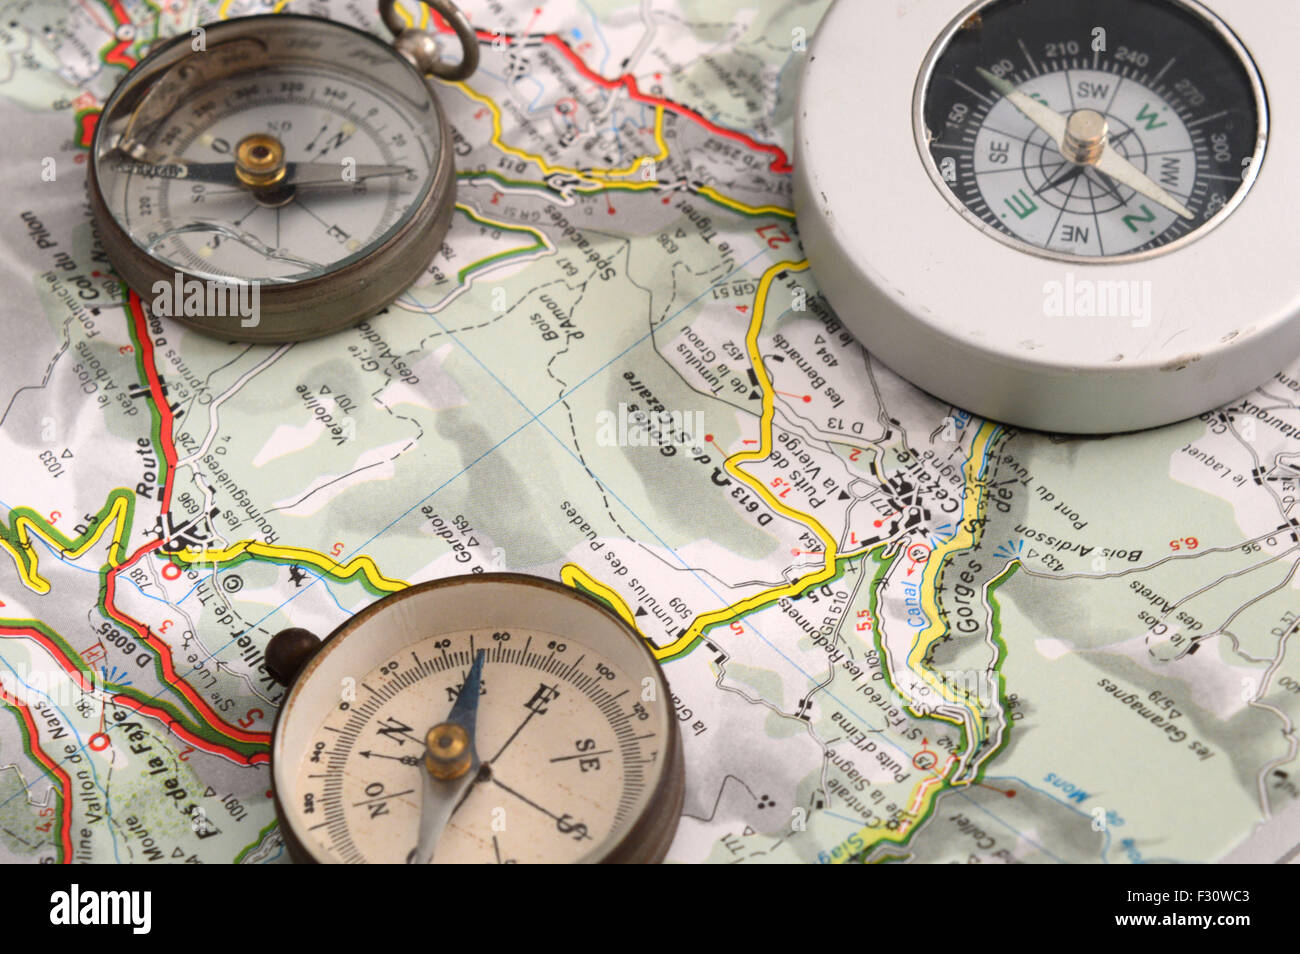 The exploration - Stock Image